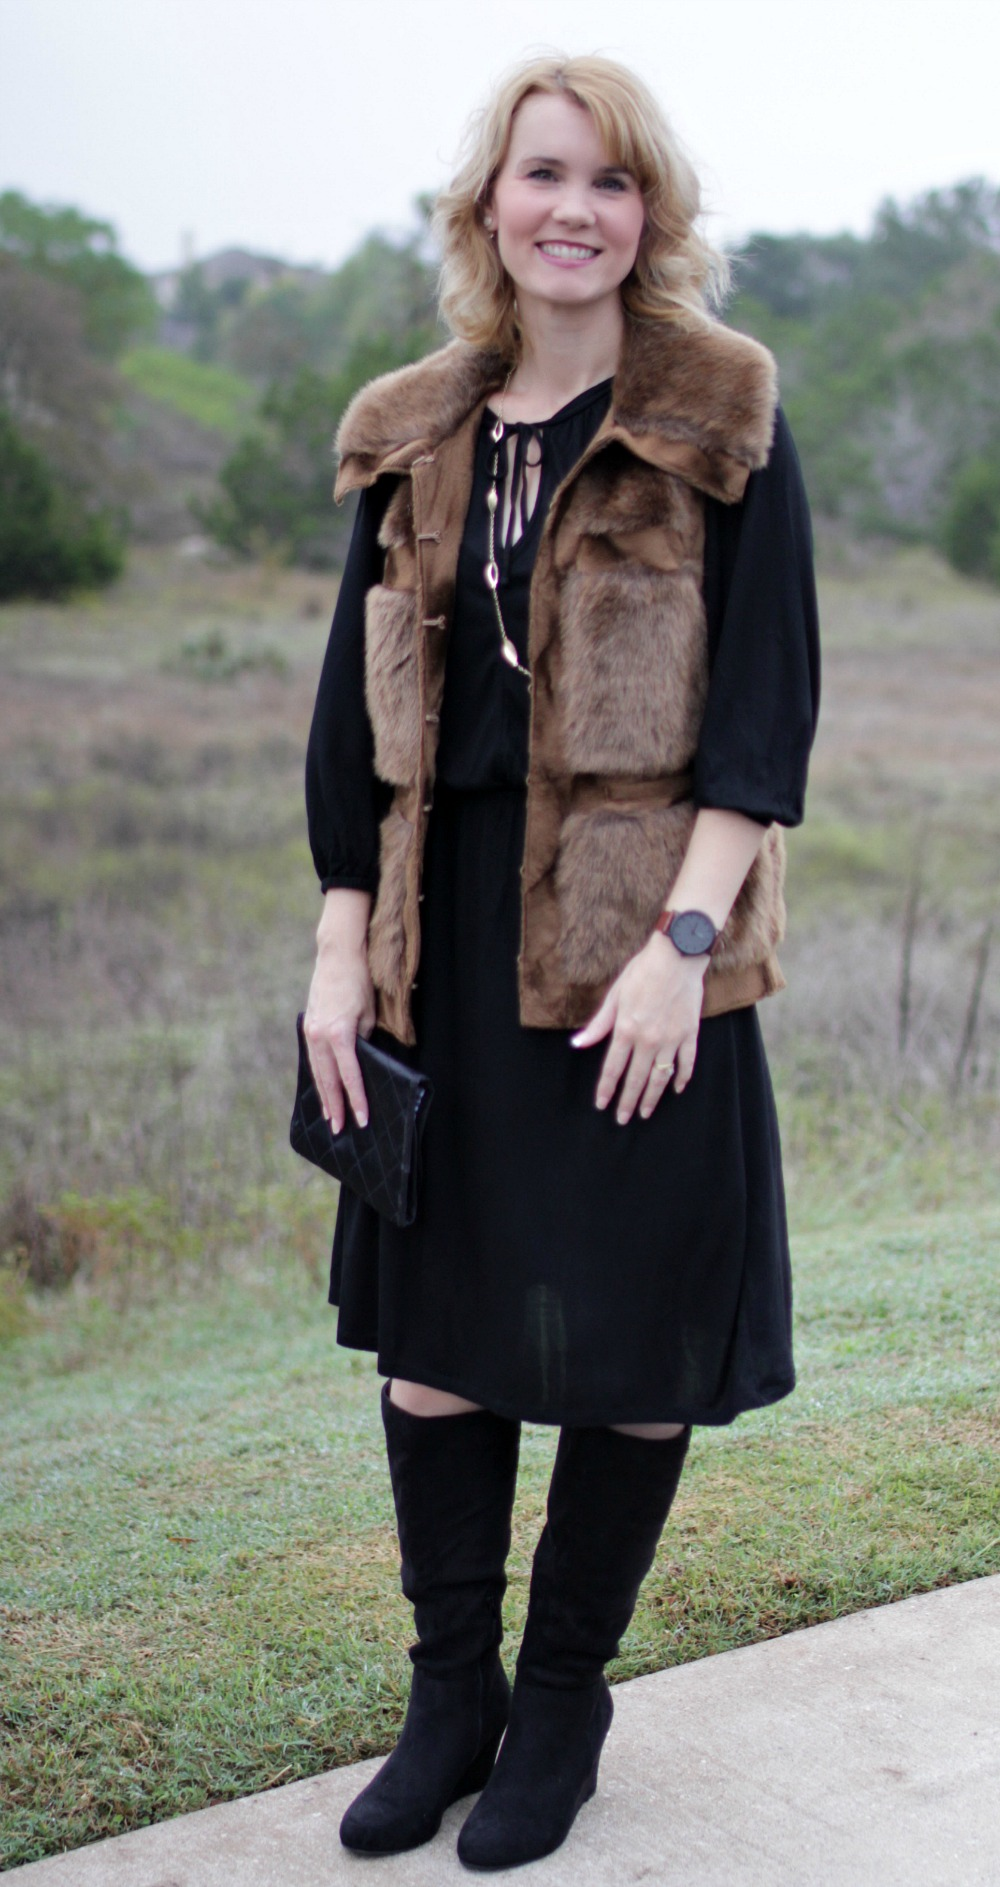 This year a chic puffy vest is on the top of our favorite fall clothing pieces. It is warm, stylish and comfortable. Although it is sleeveless, you'd be surprised how warm a puffy vest will keep as you venture out into the cold. There are many different ways to wear this extremely versatile piece and [ ].